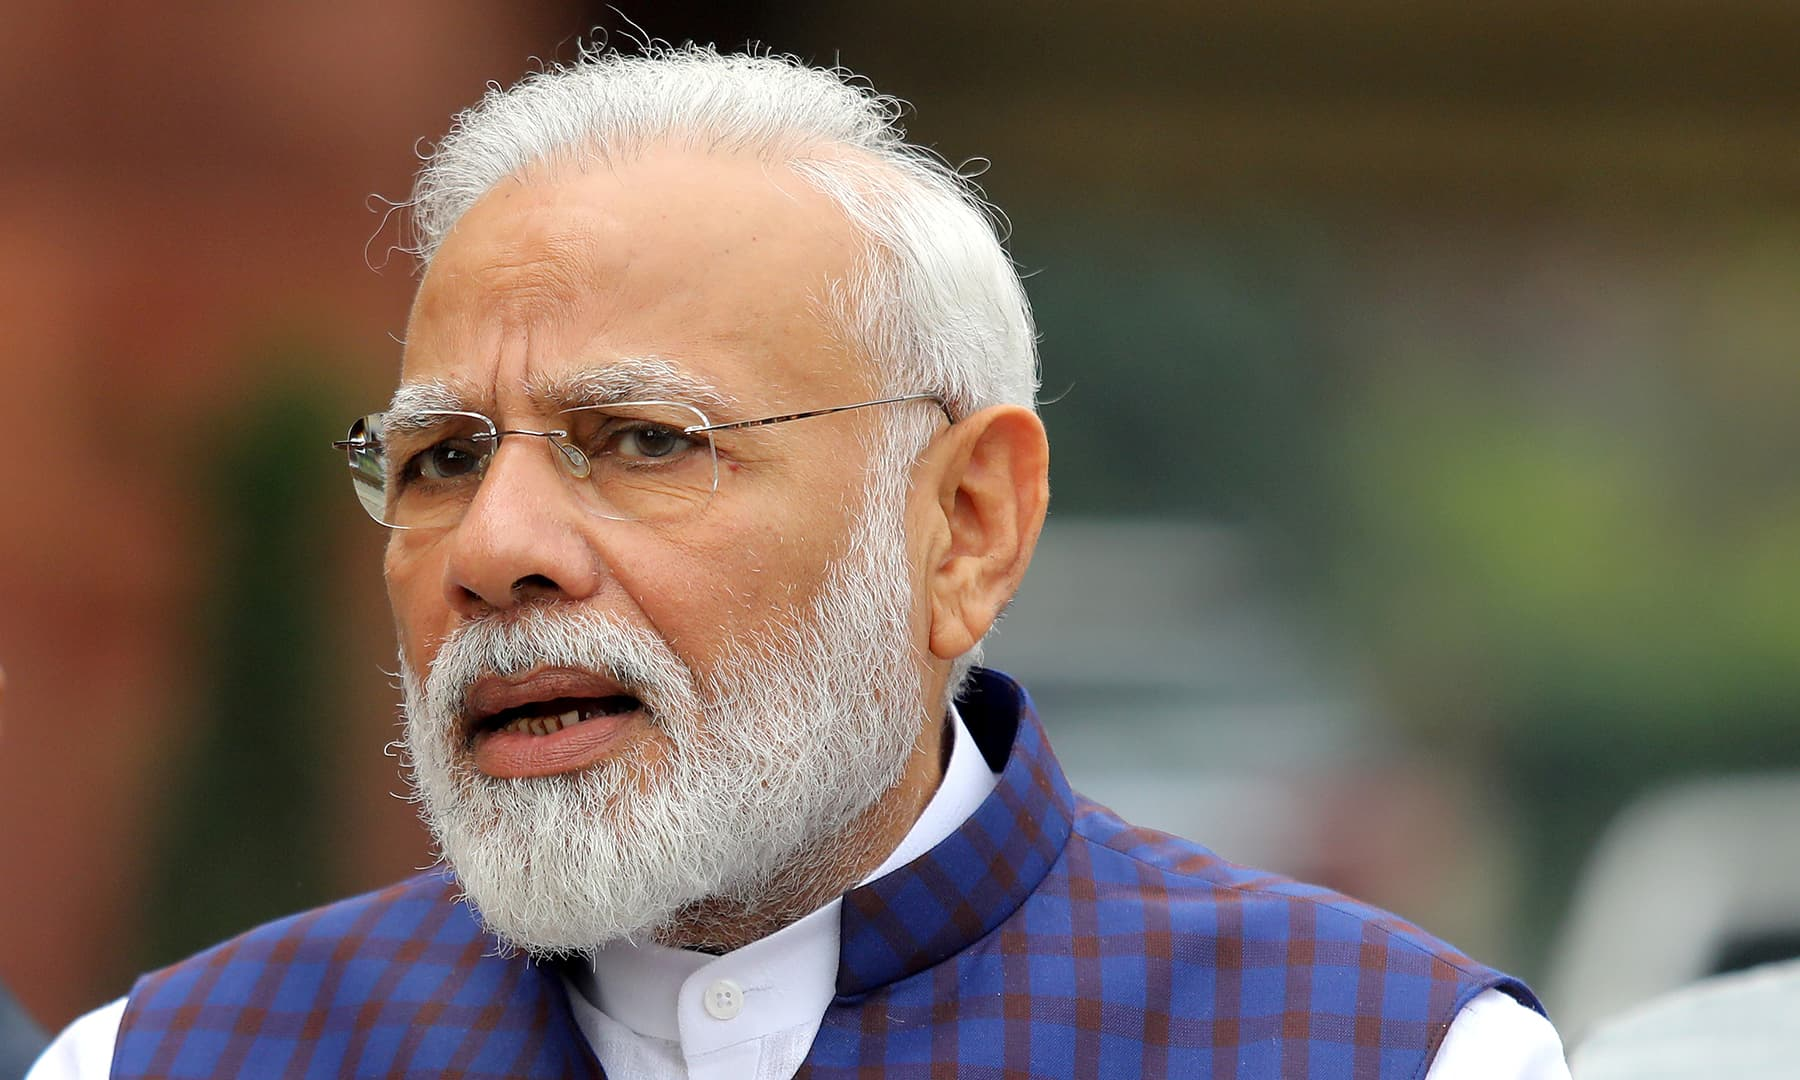 Analysts say the Bharatiya Janata Party has intensified a policy of campaigning on Indian Prime Minister Narendra Modi's personal appeal, rather than on development issues. — Reuters